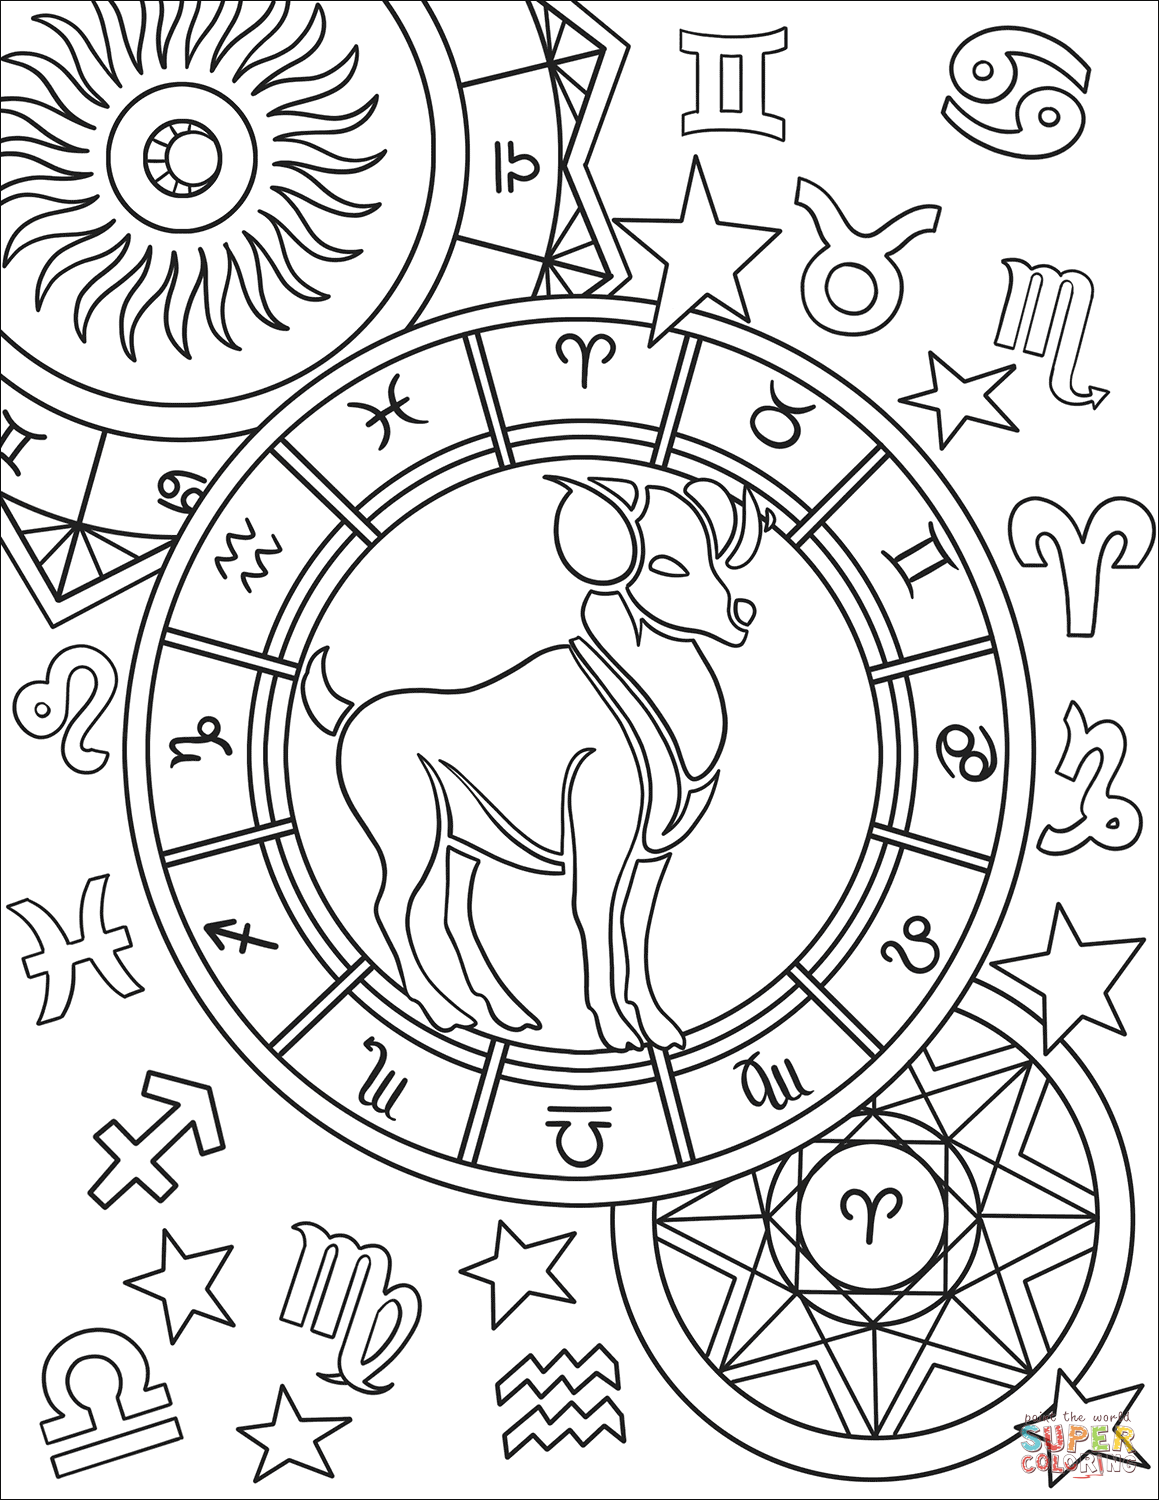 zodiac signs coloring pages zodiac signs coloring pages kidsuki zodiac pages coloring signs